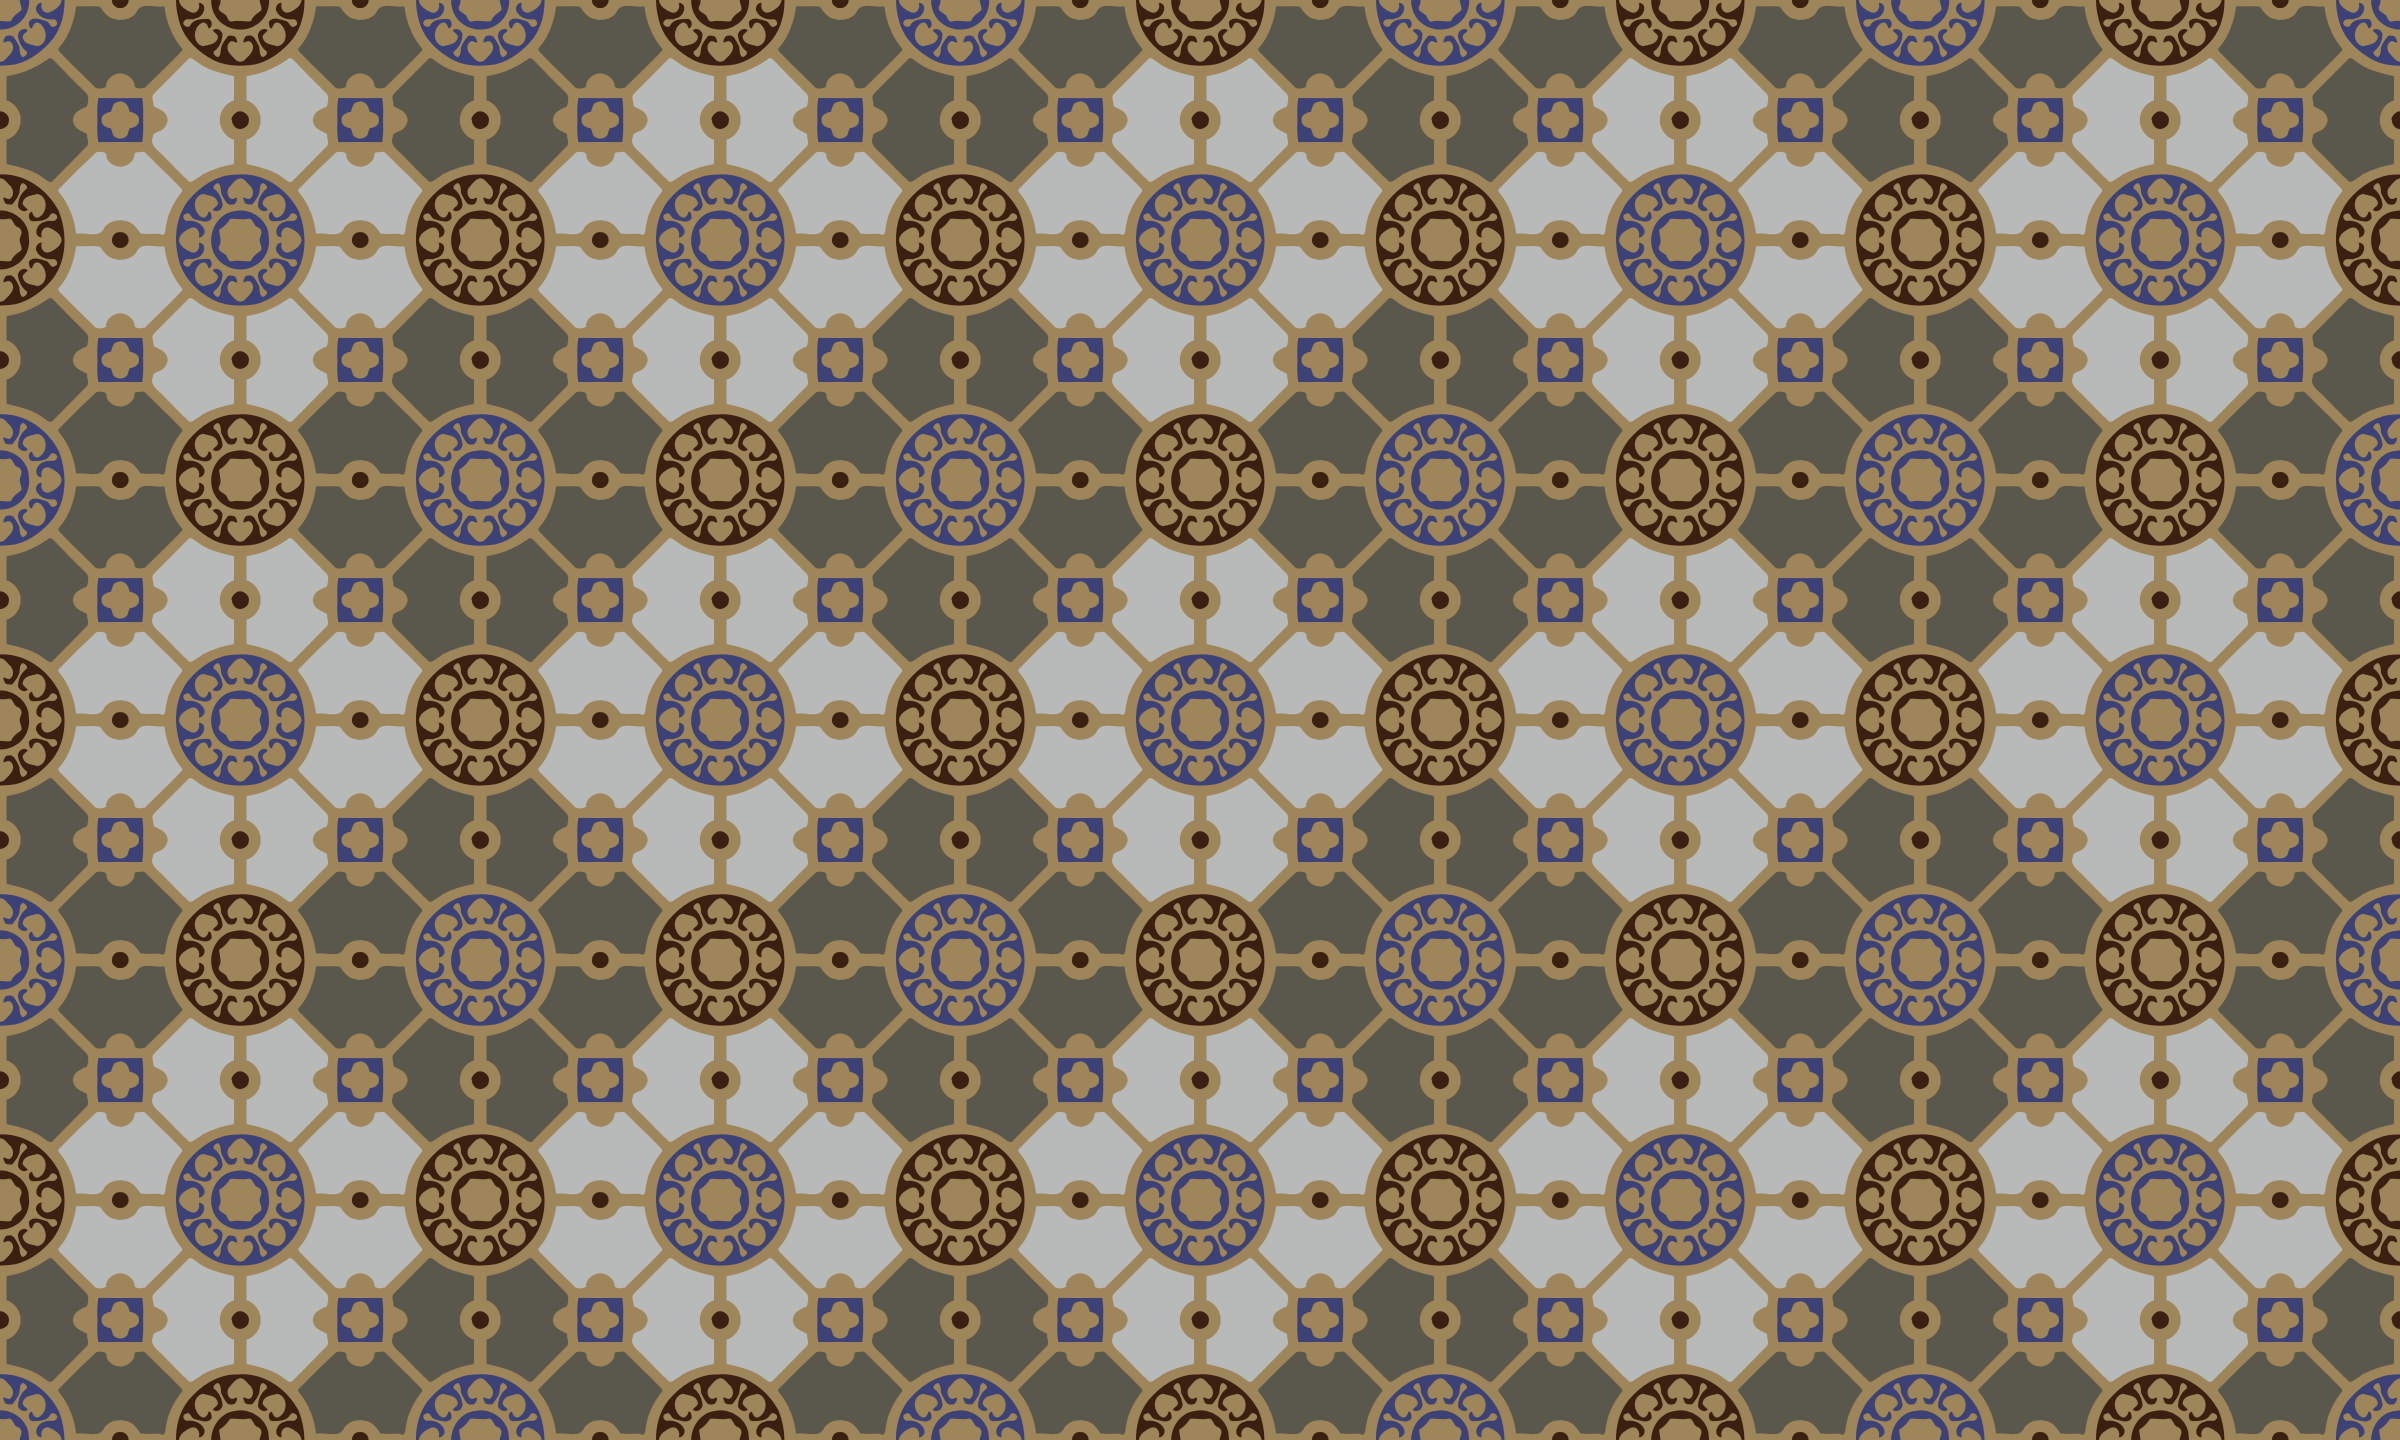 Vintage tile background by Firkin